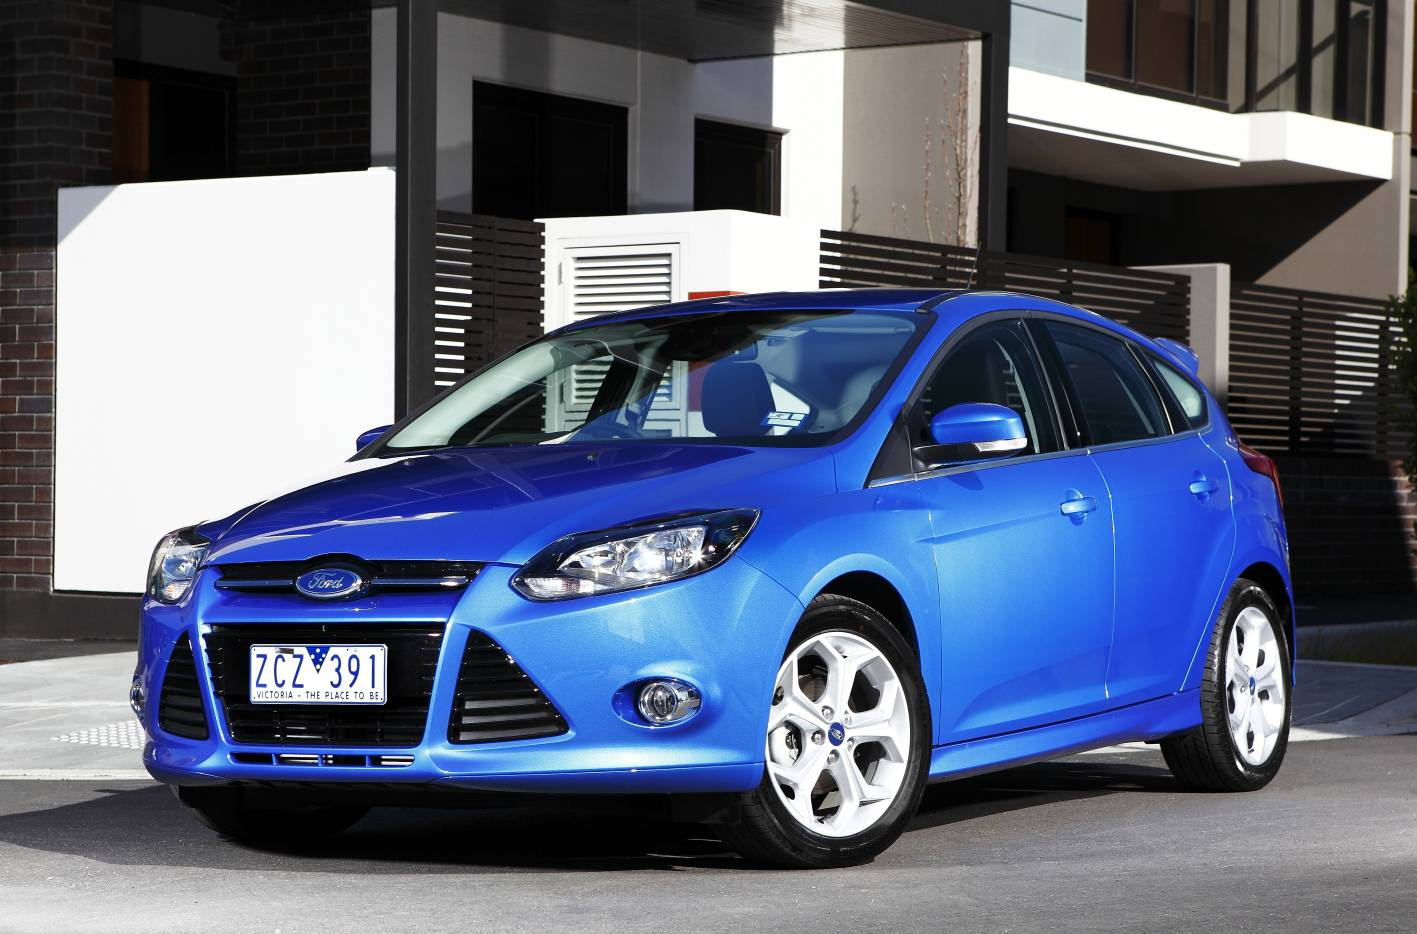 Ford Focus Transmission Problems — Auto Expert by John